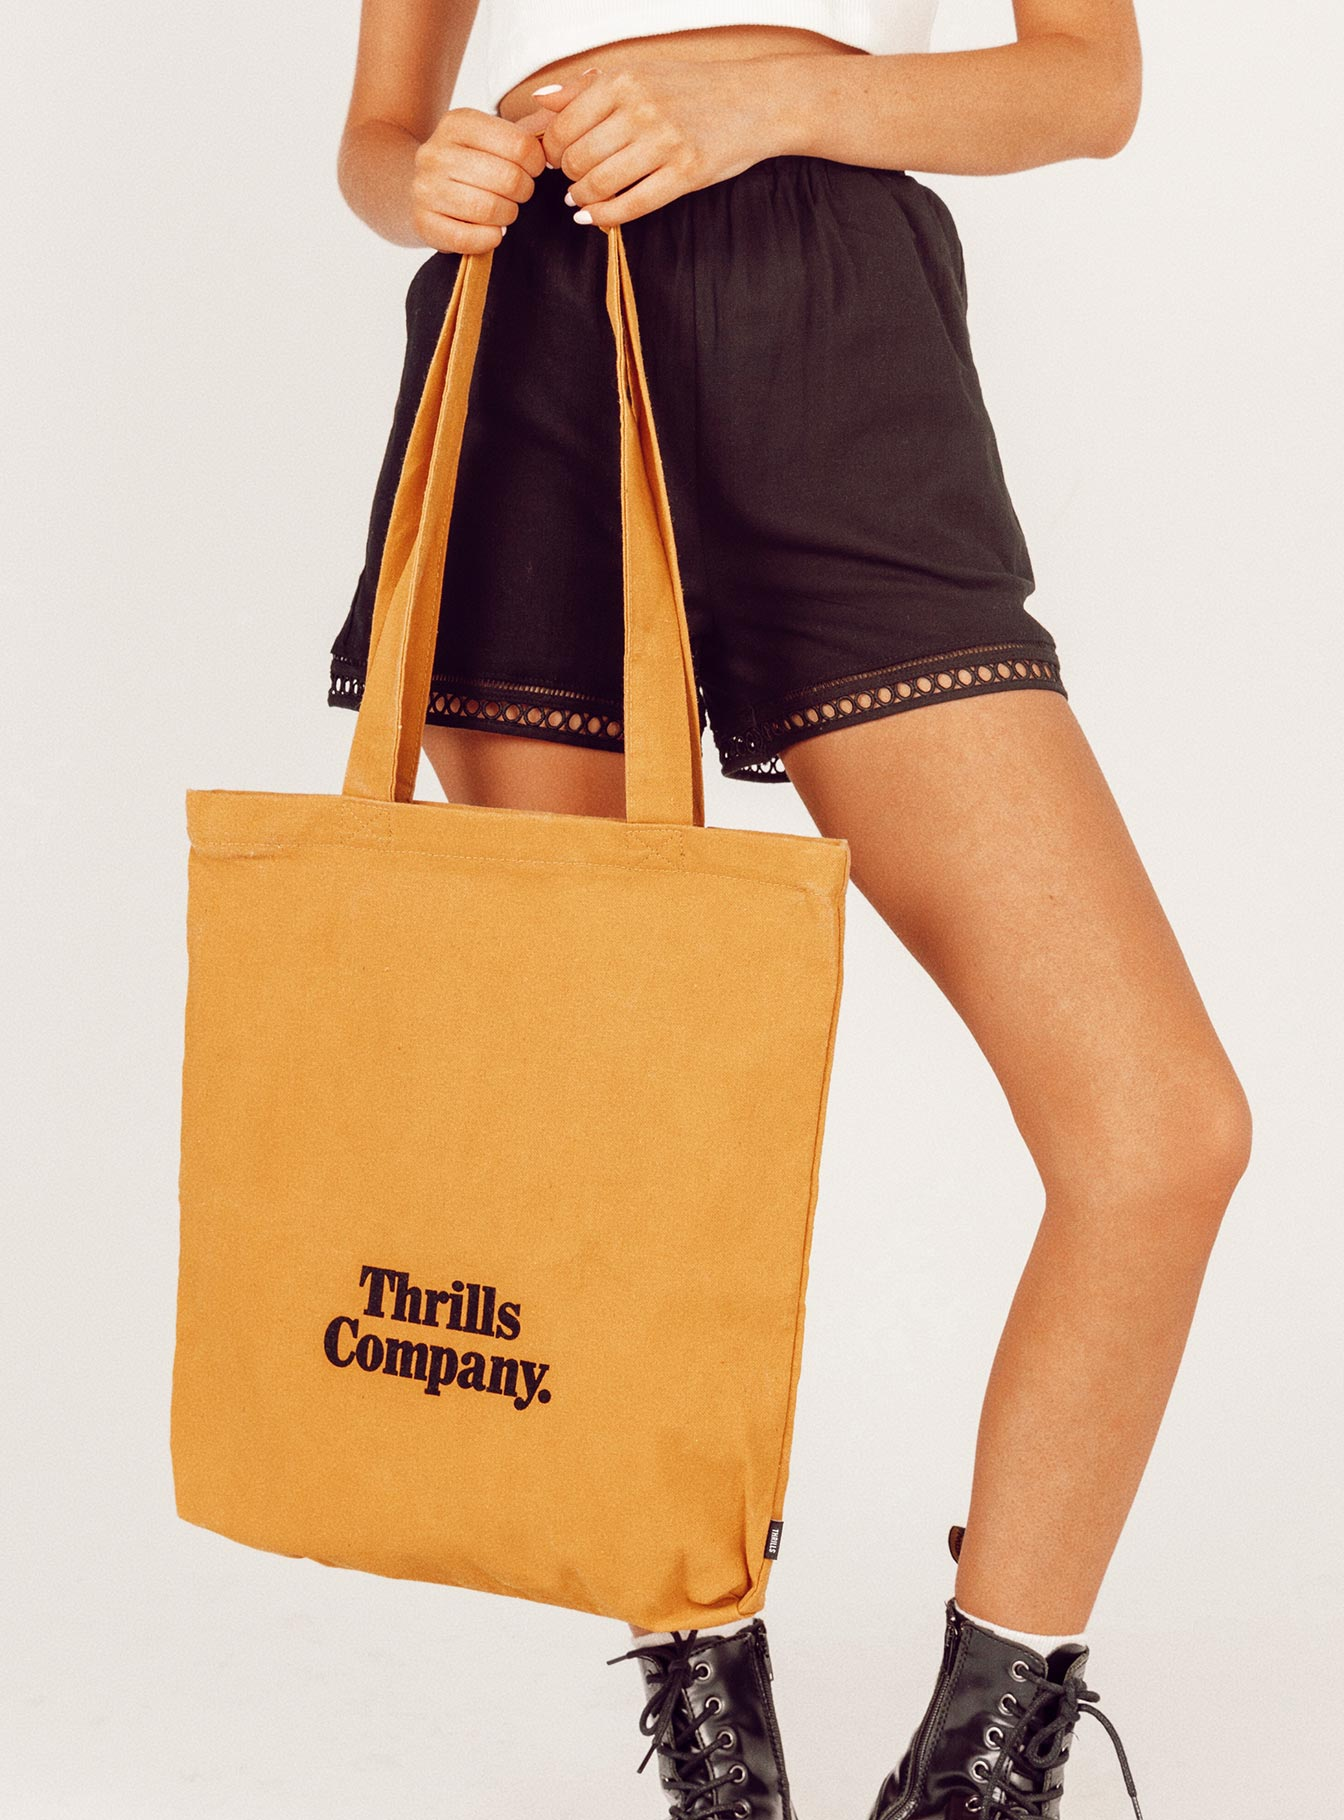 Thrills Strength Tote